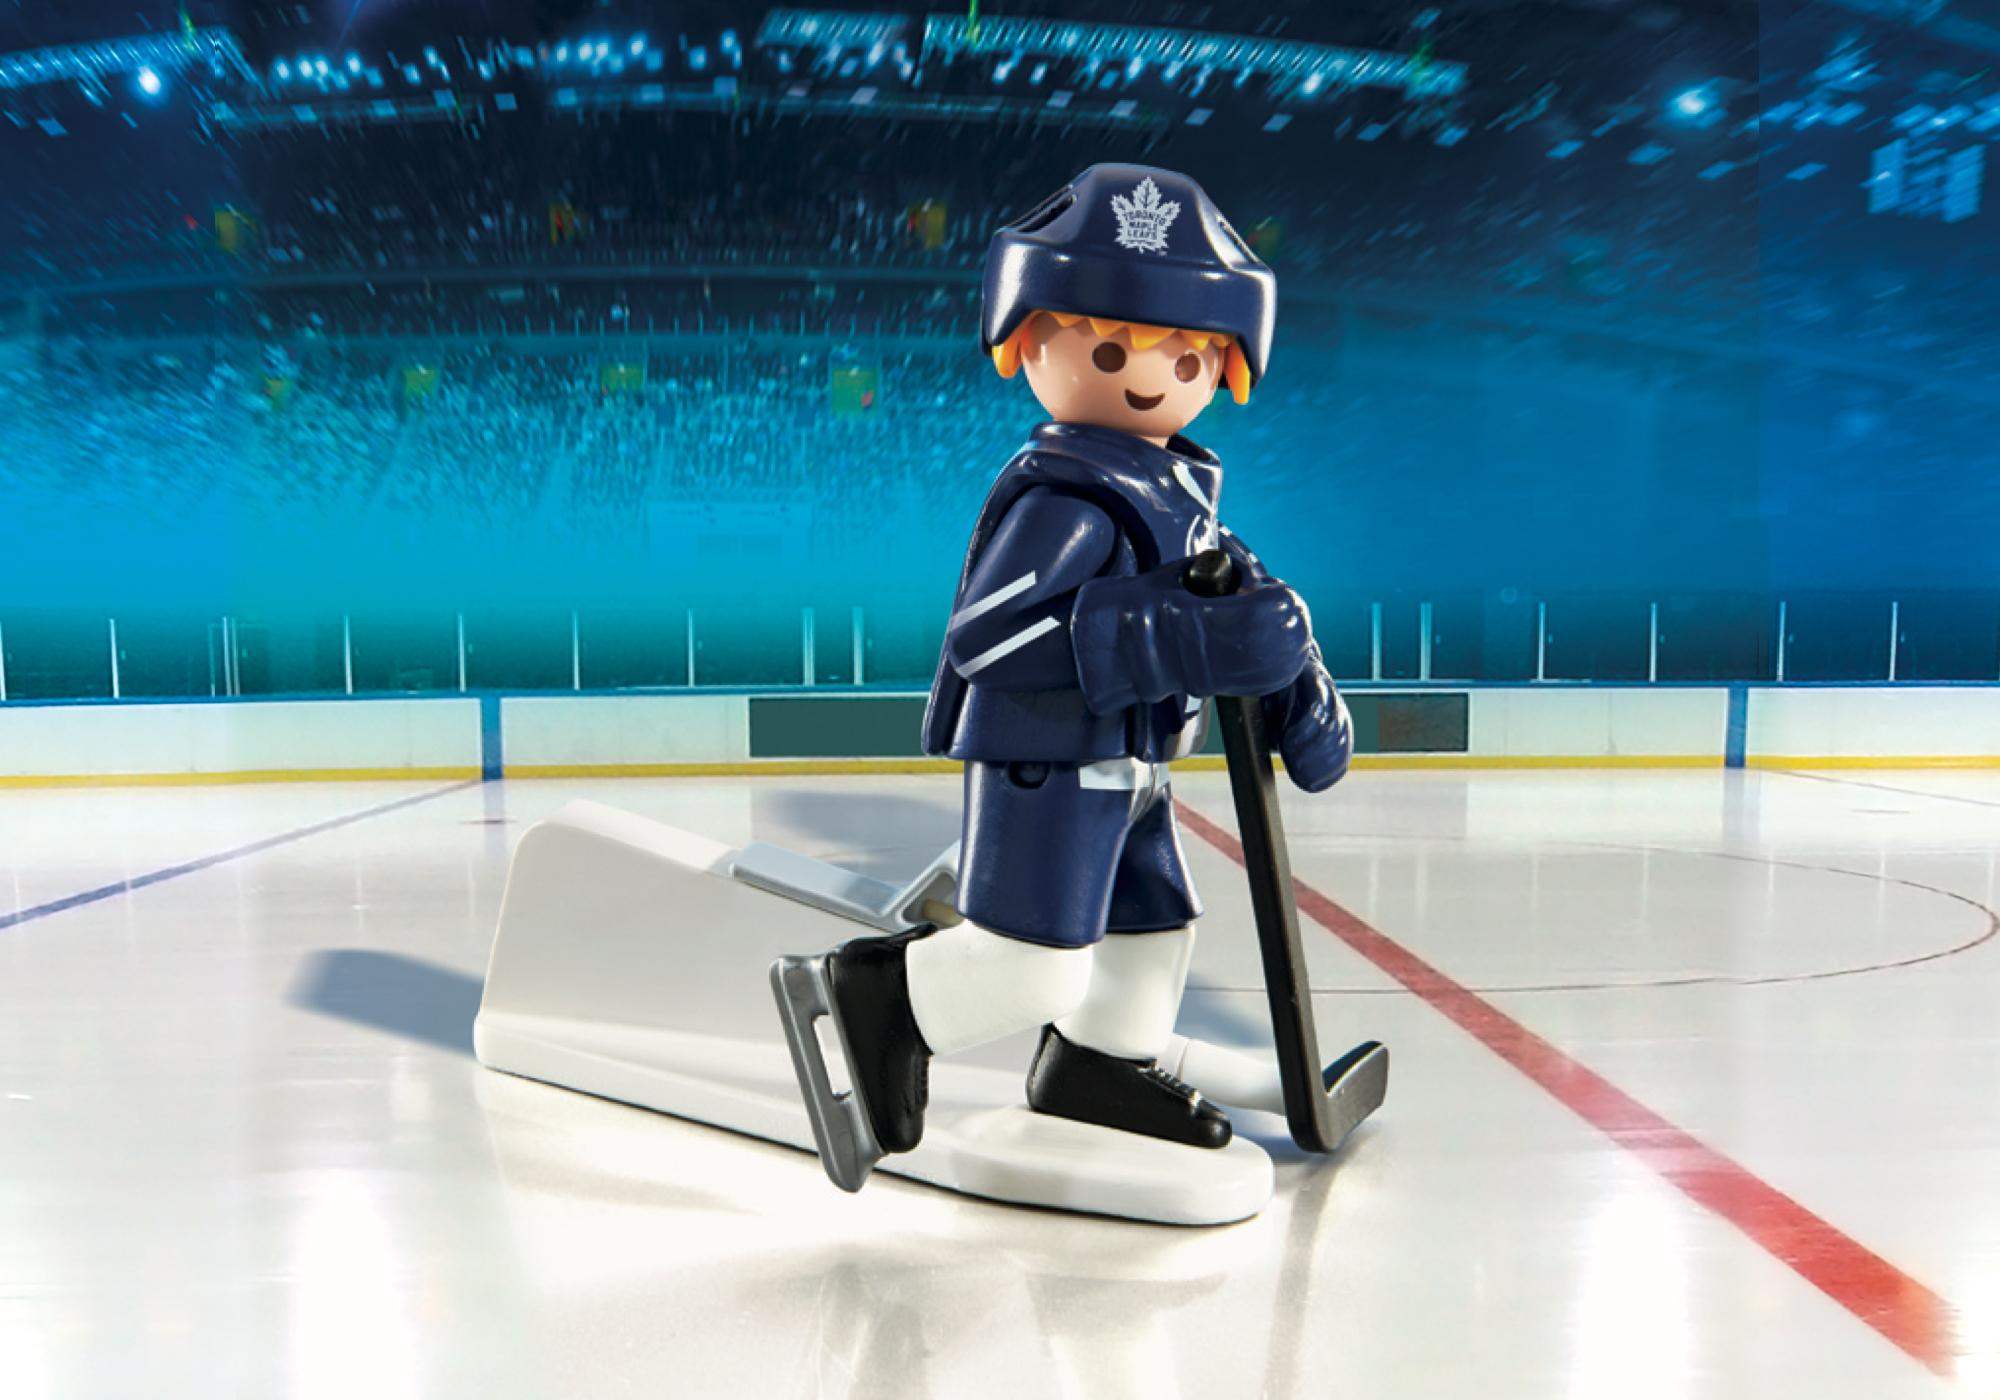 5084_product_detail/NHL® Toronto Maple Leafs® Player